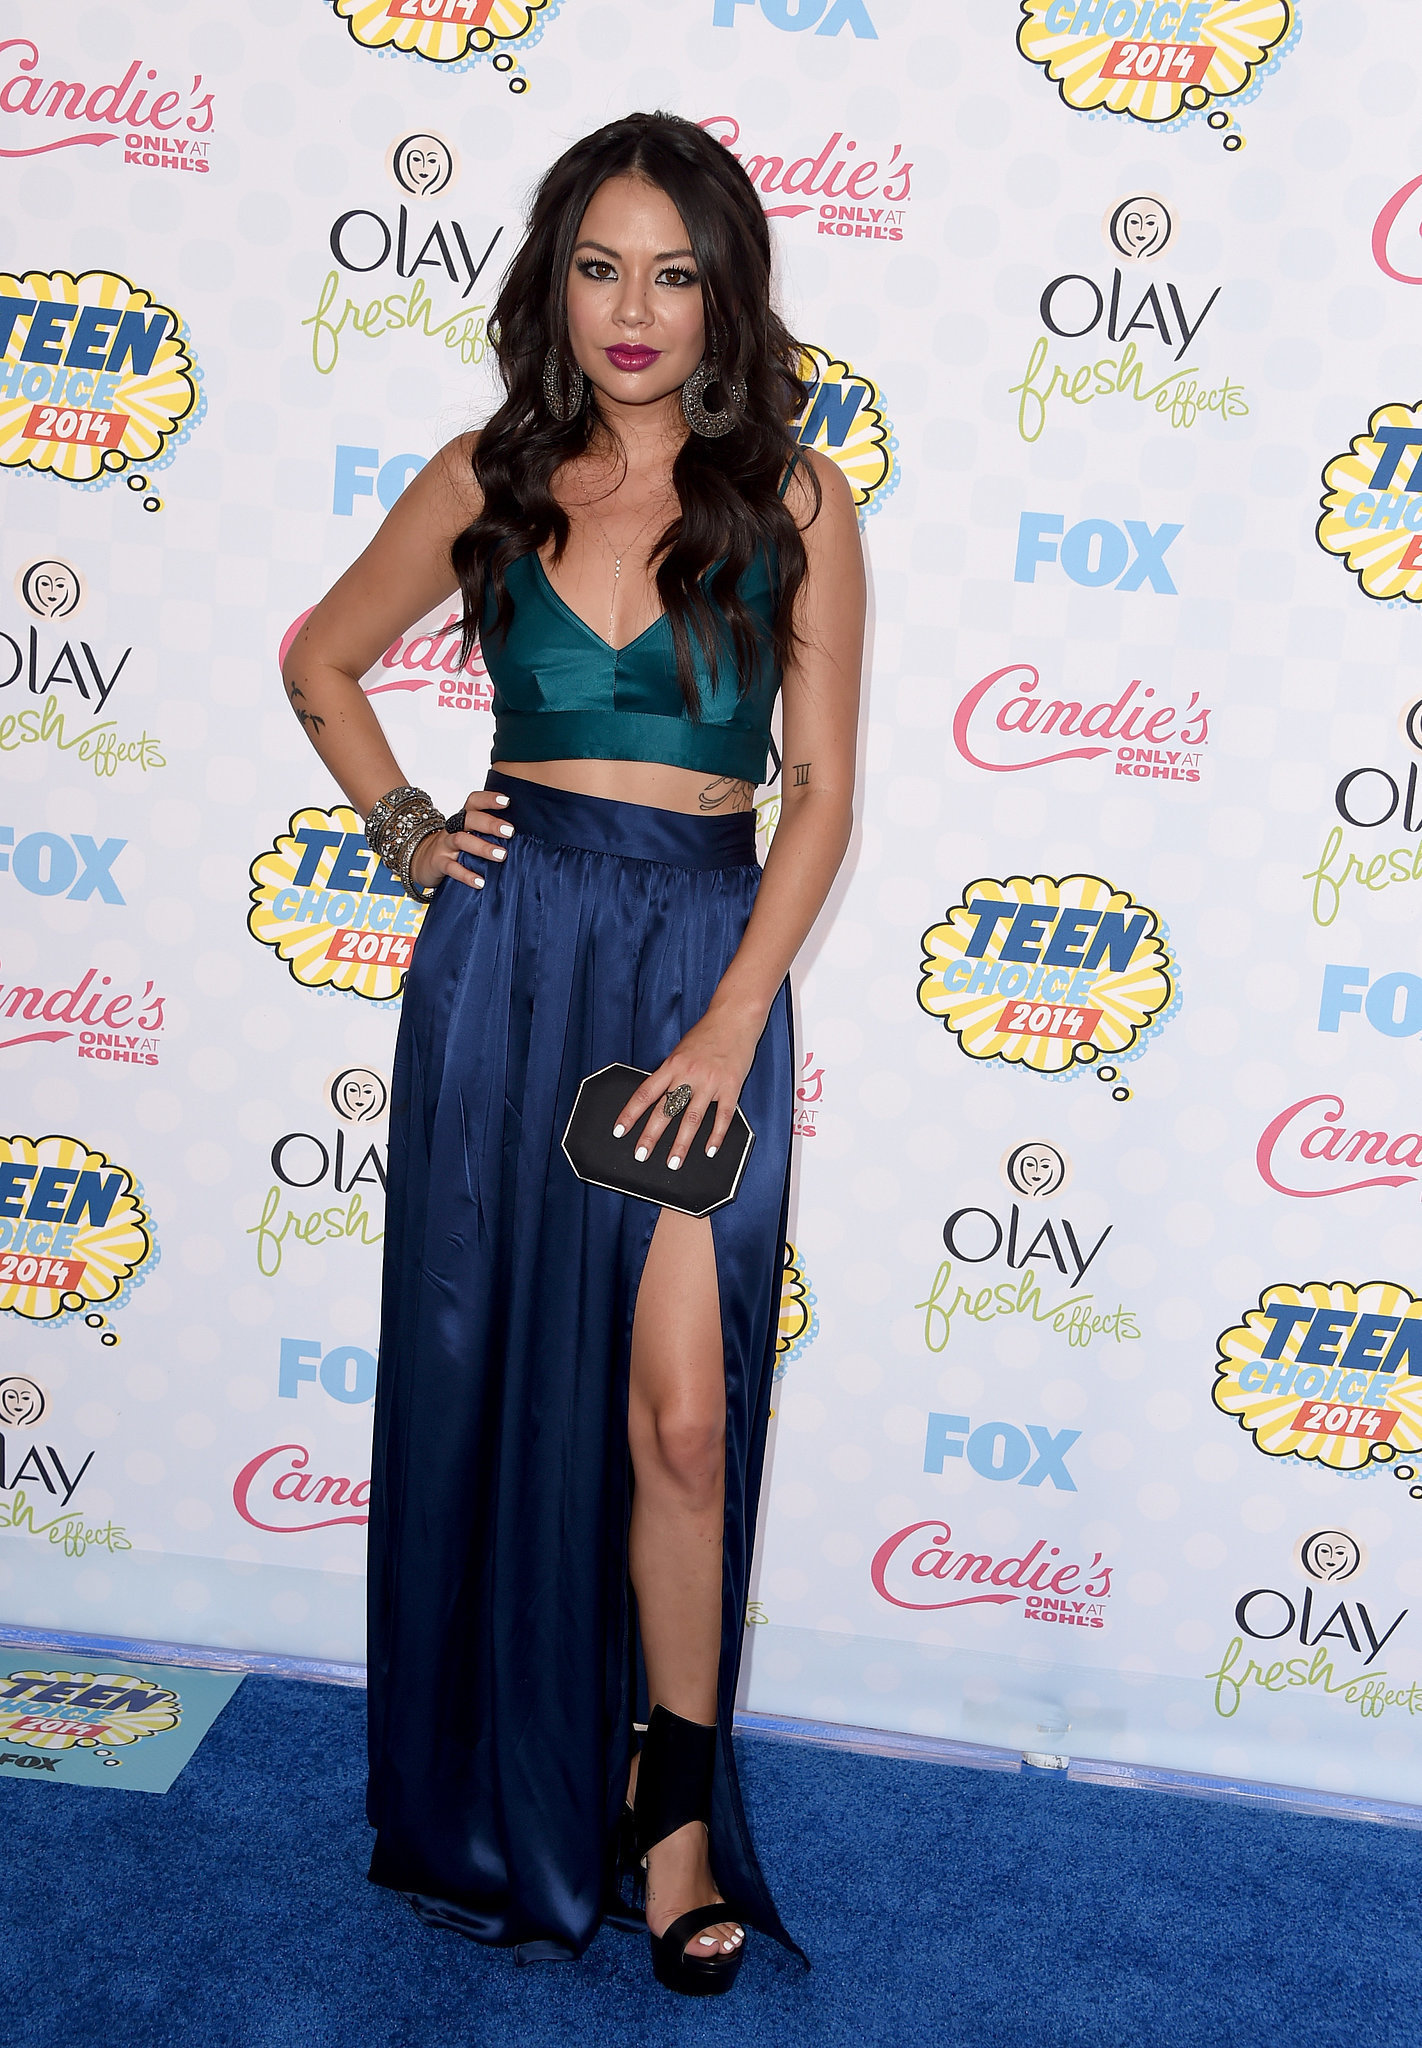 The Pretty Little Liars Cast Takes Over the Teen Choice Awards!